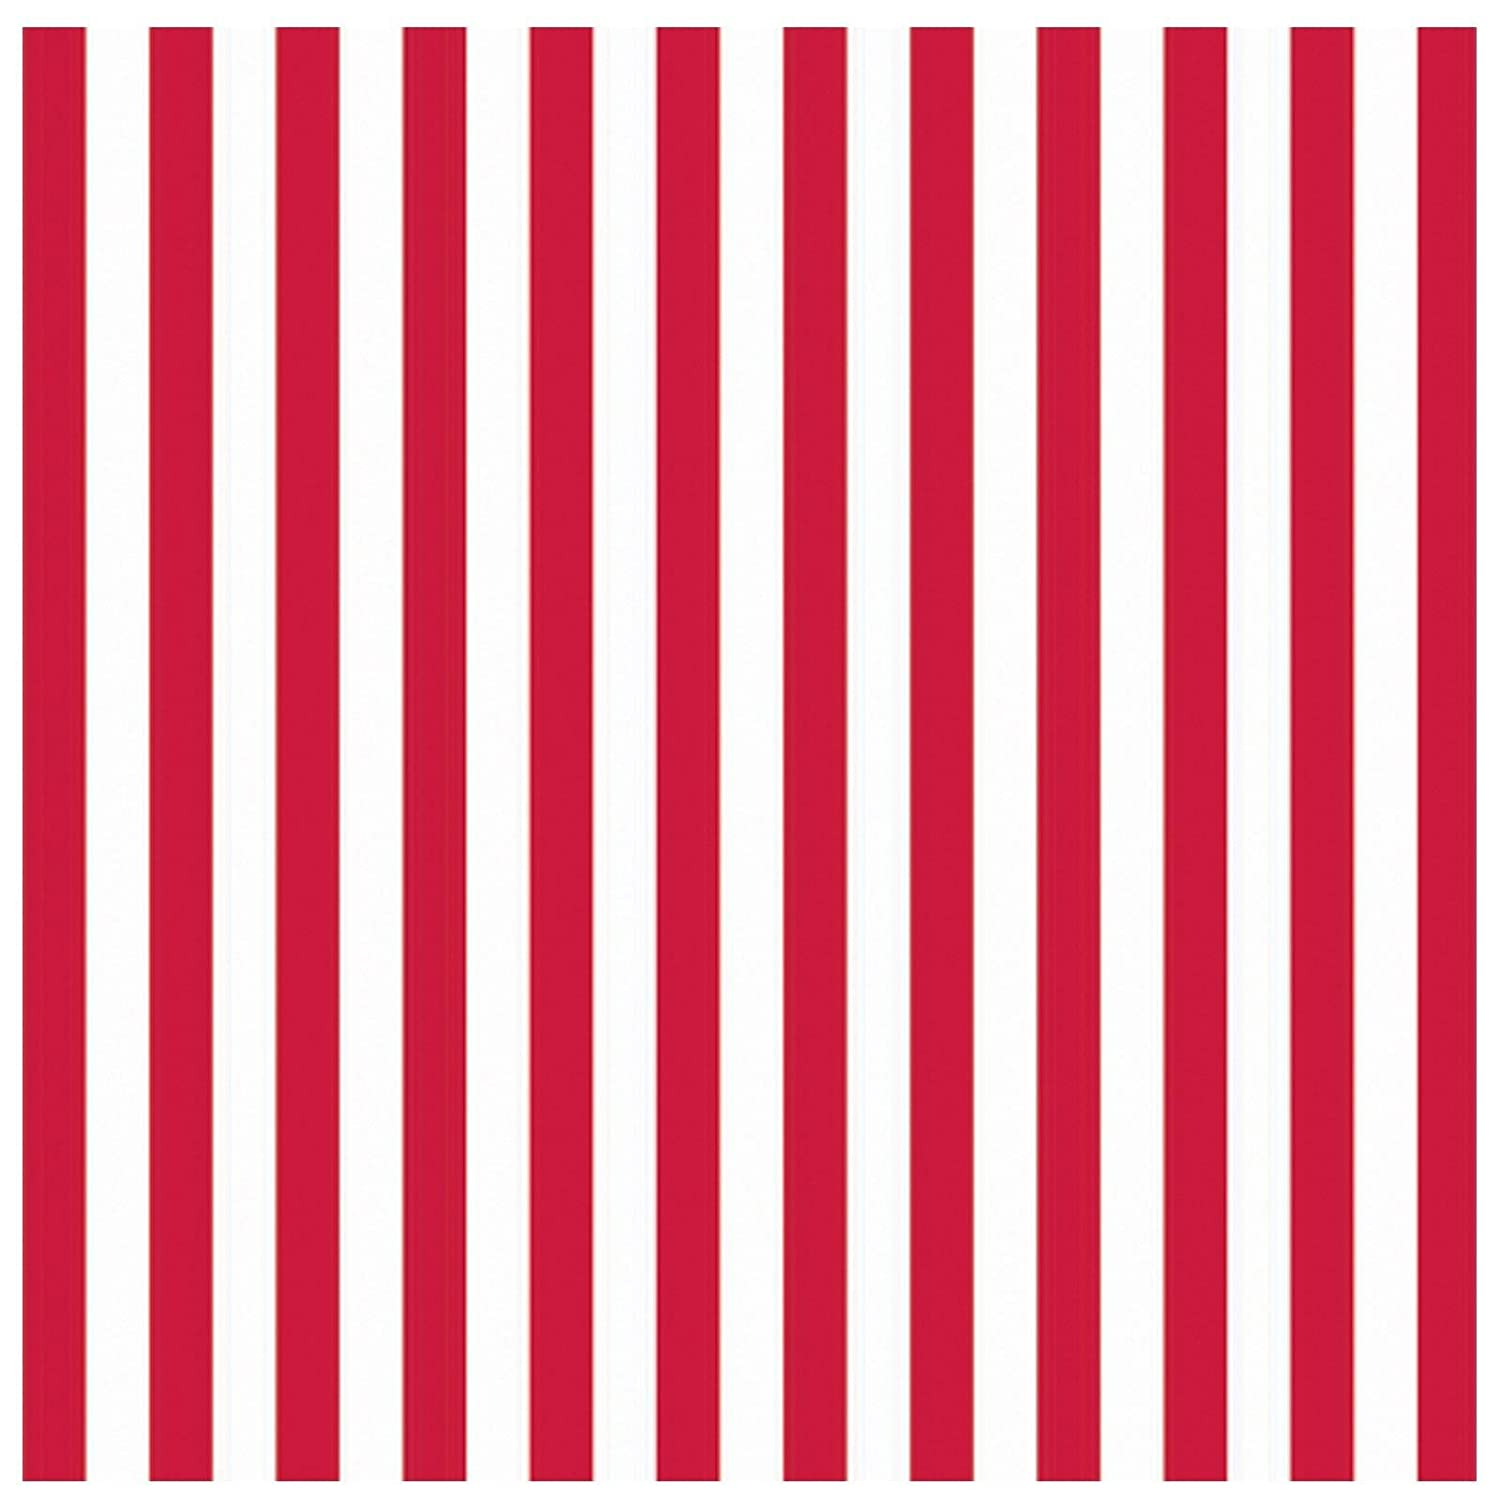 red and white striped wrapping paper